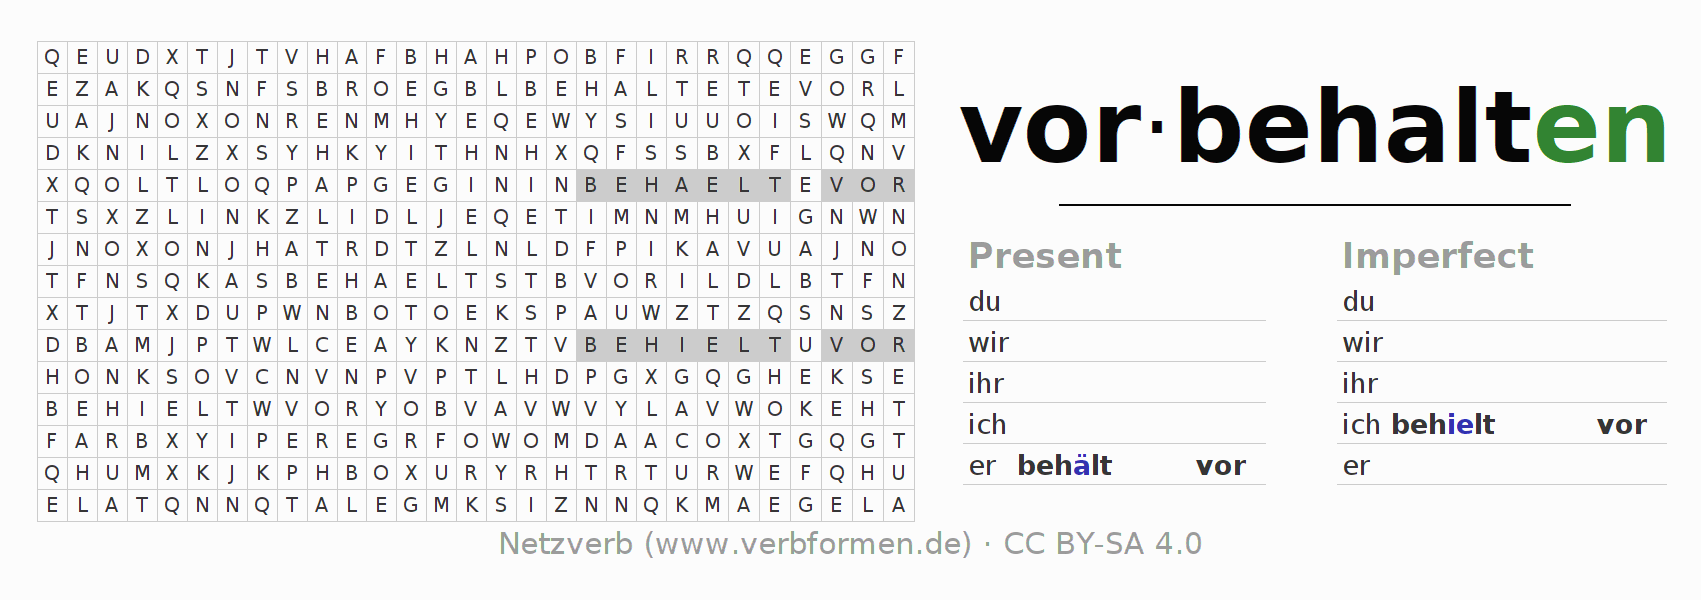 Word search puzzle for the conjugation of the verb vorbehalten